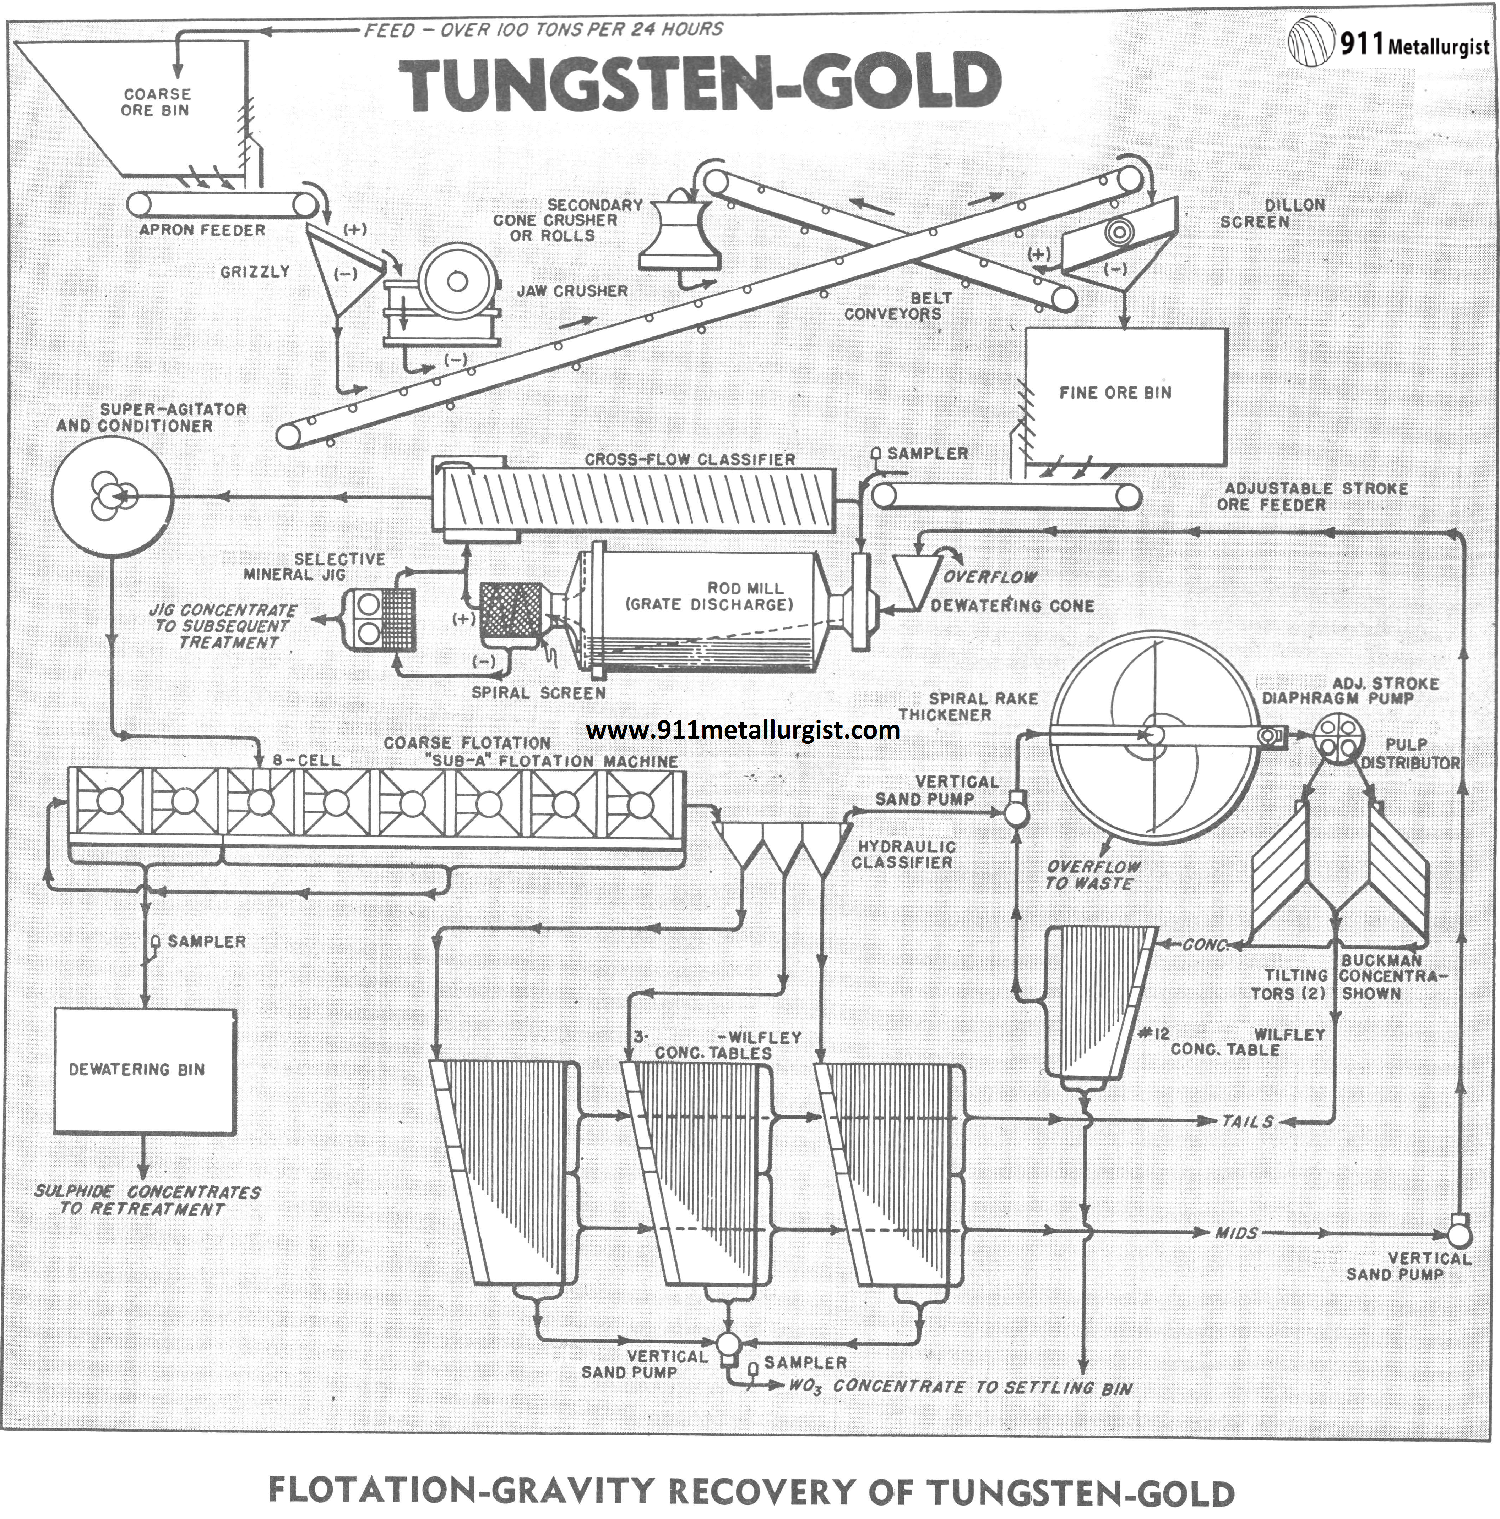 Flotation-Gravity Recovery of Tungsten-Gold